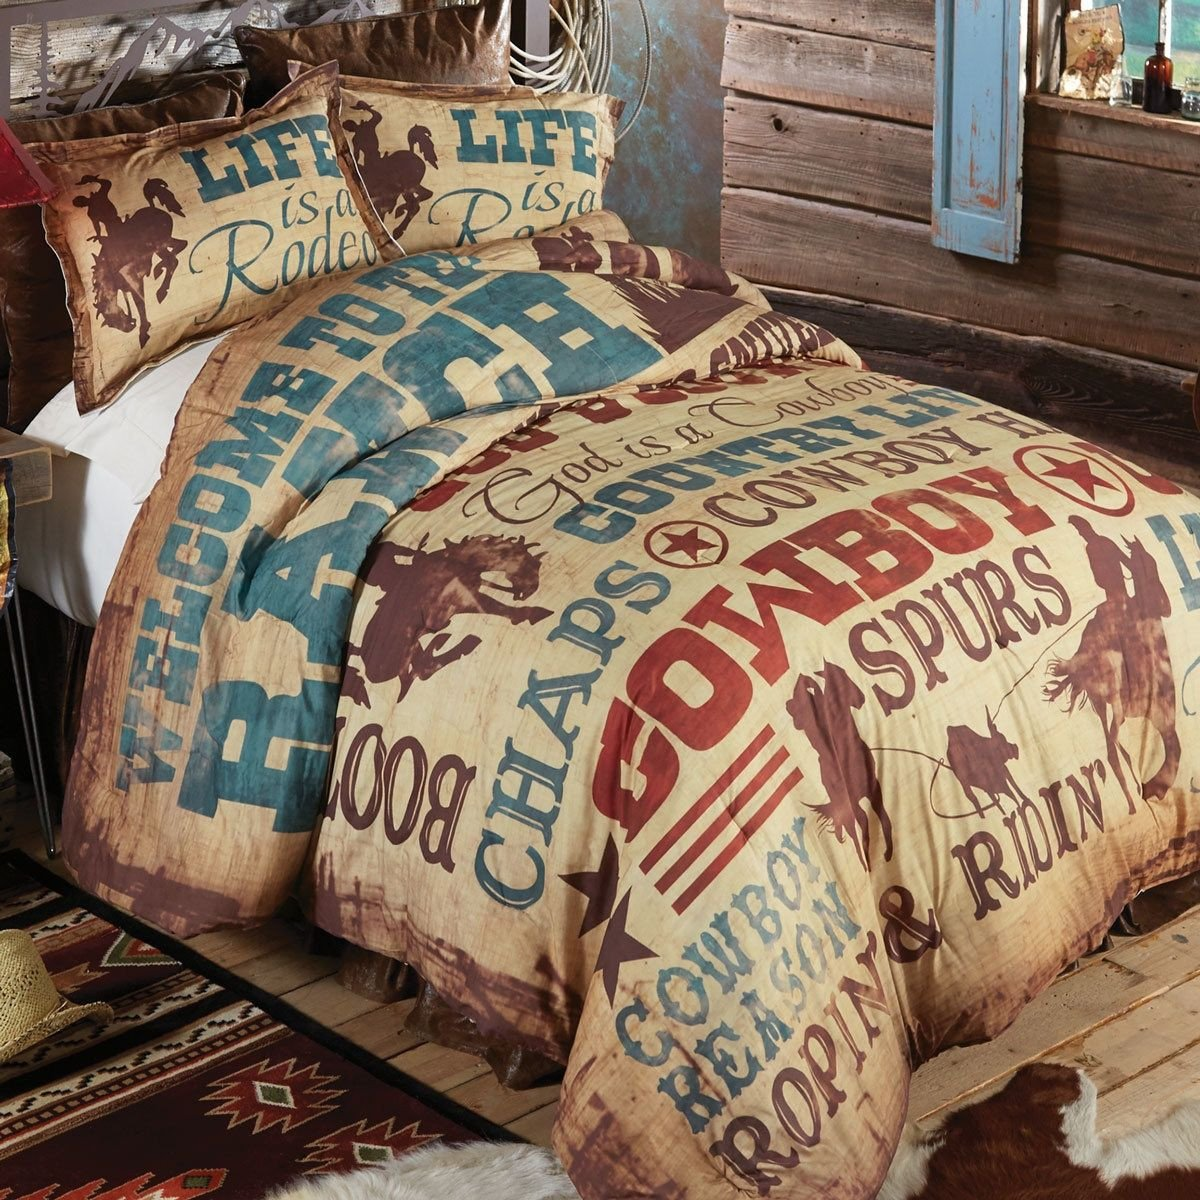 Dallas Cowboy Bedroom Set Luxury Cowboy Lifestyle forter King